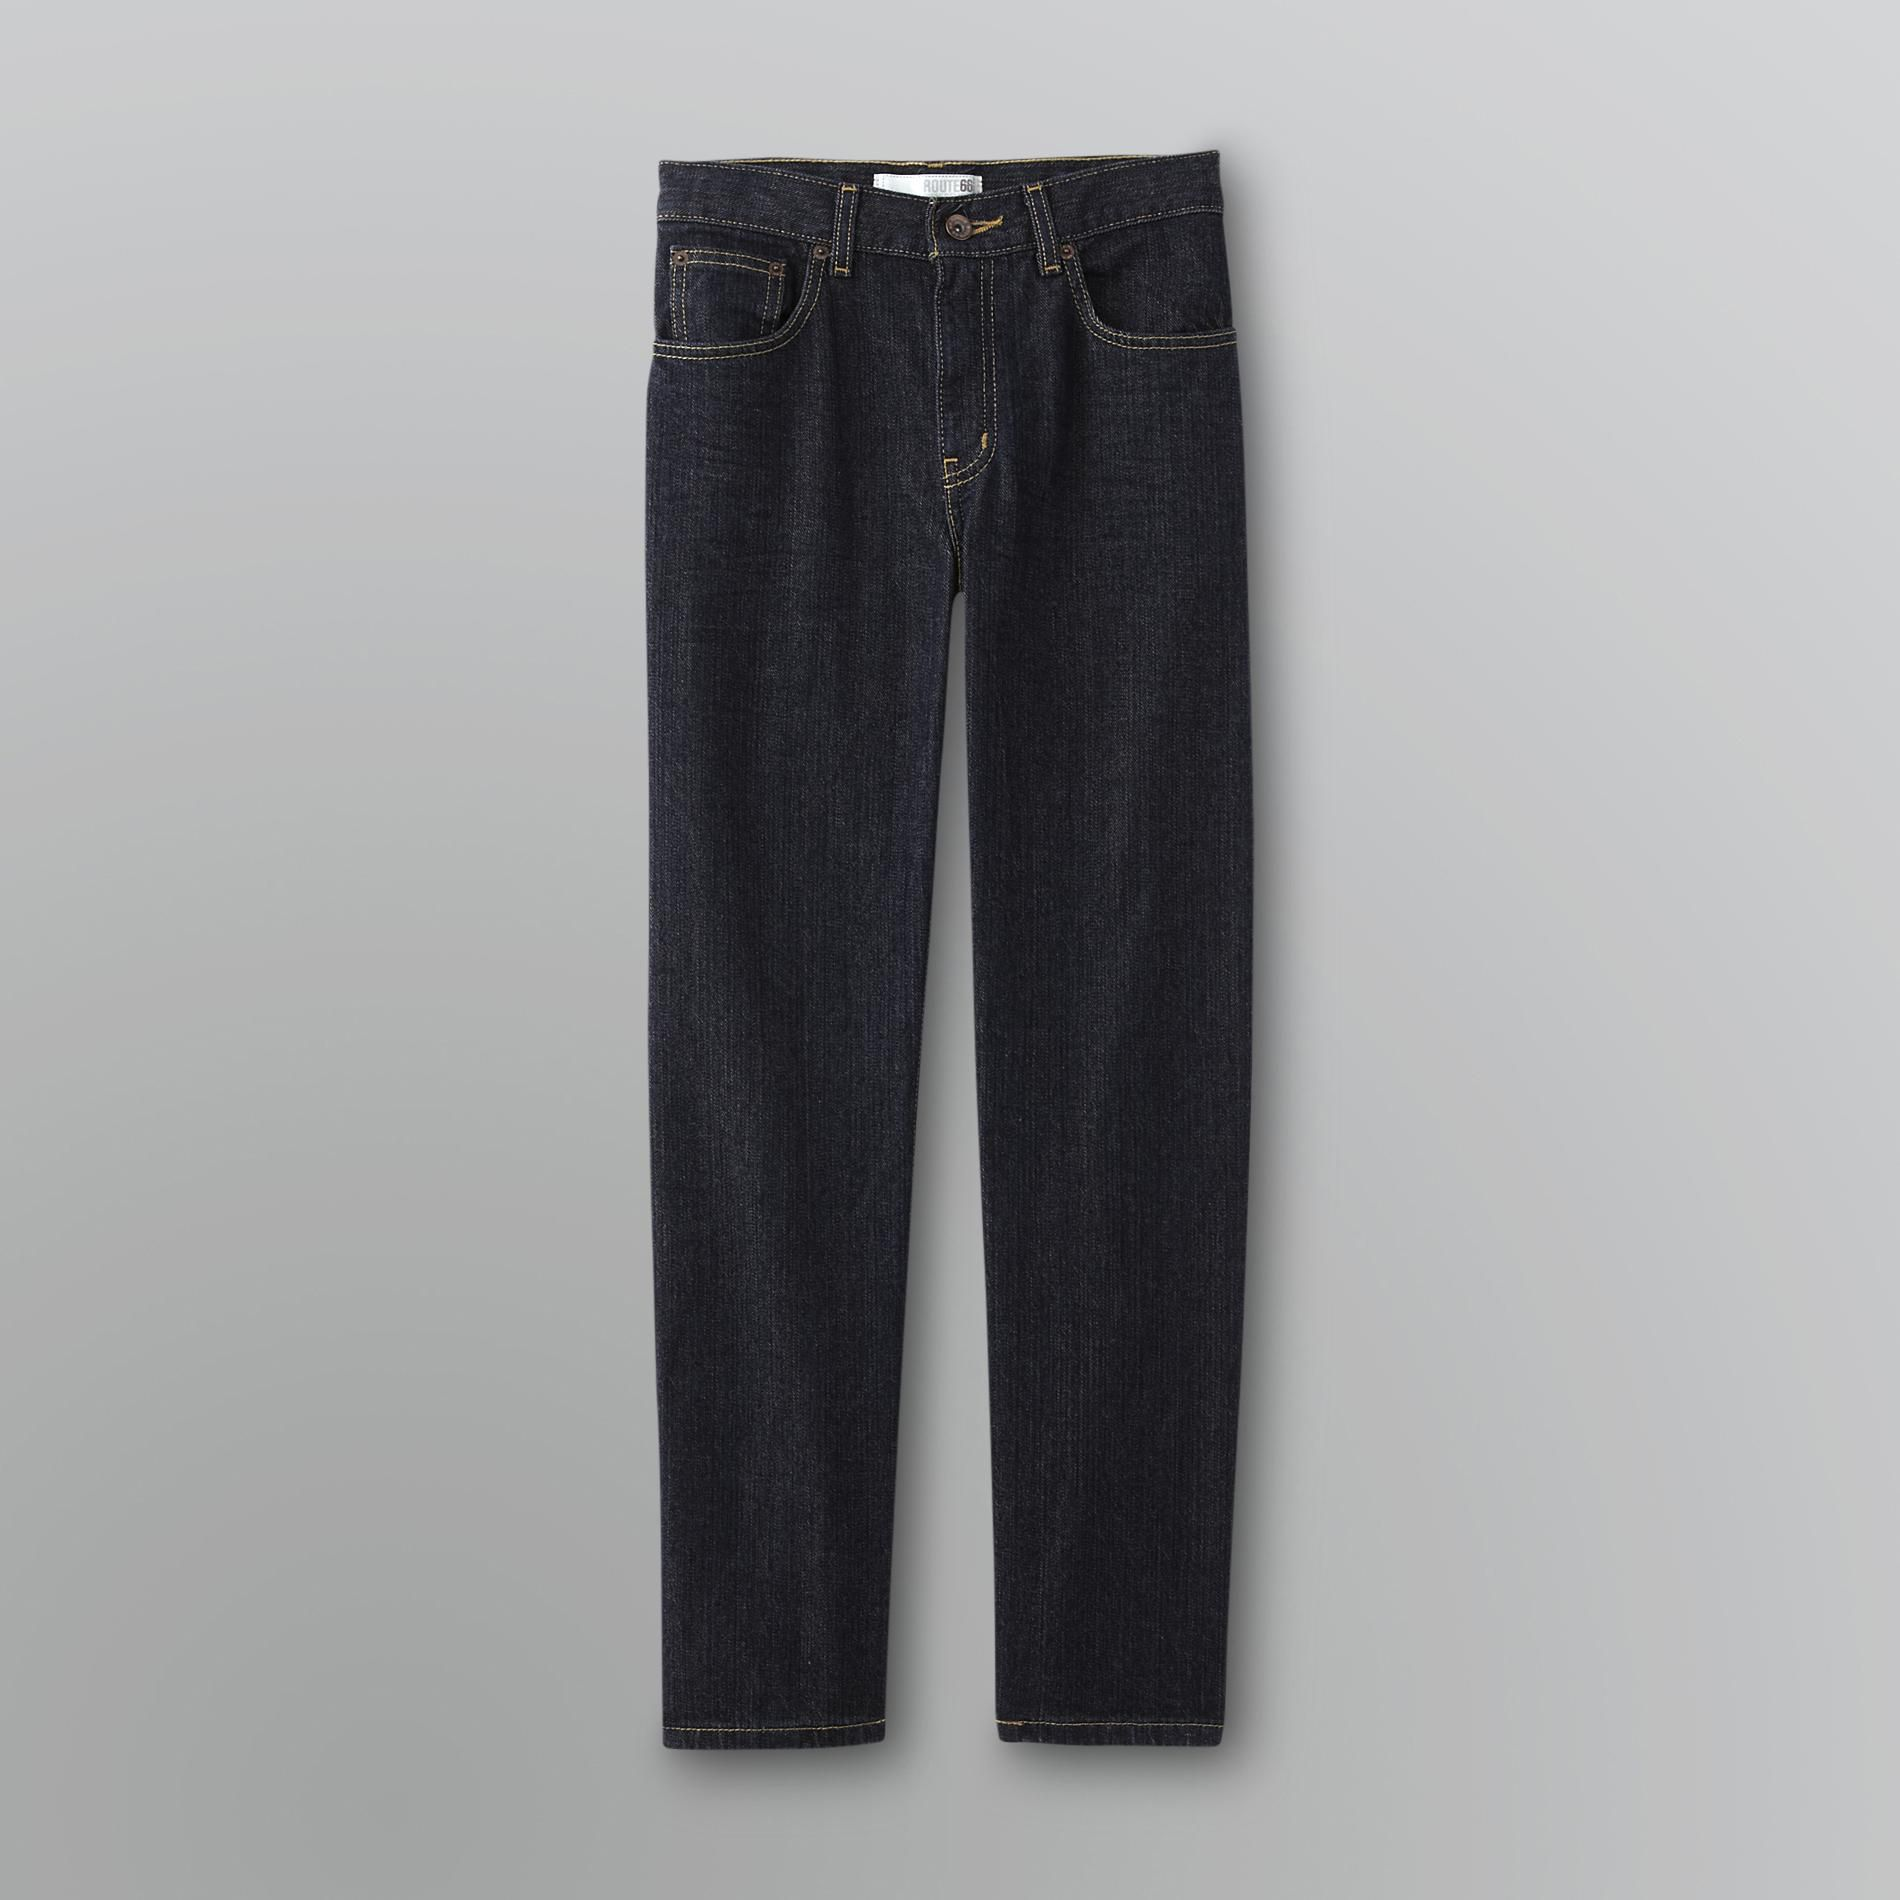 Route 66 Boy's Slim Straight Jeans